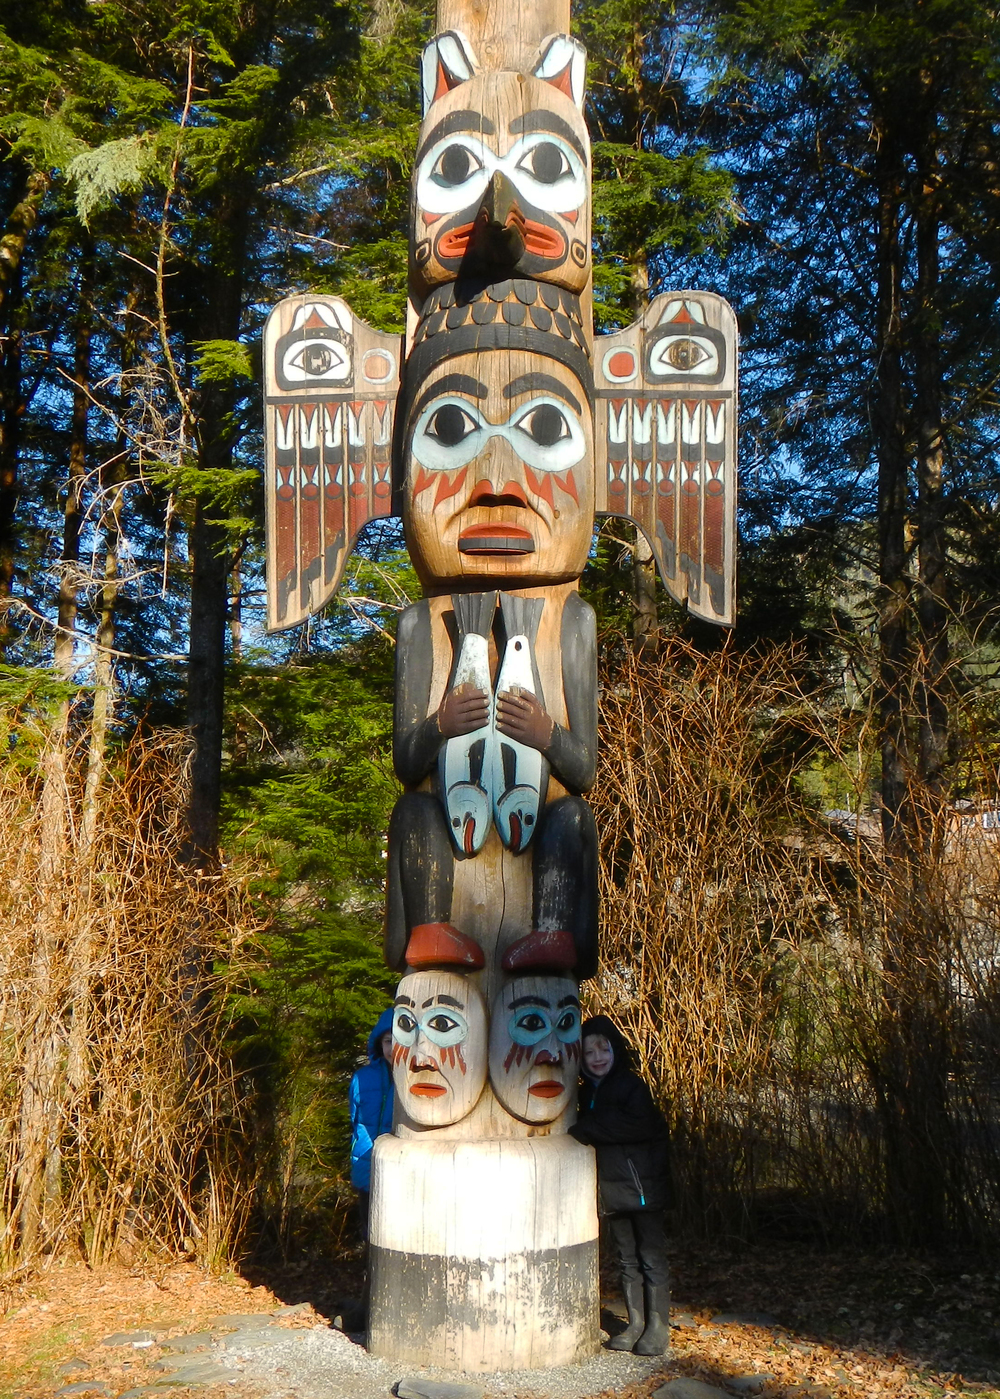 Totem Bight is a great place to learn about totem poles and native culture and check out the beach area with the kids.